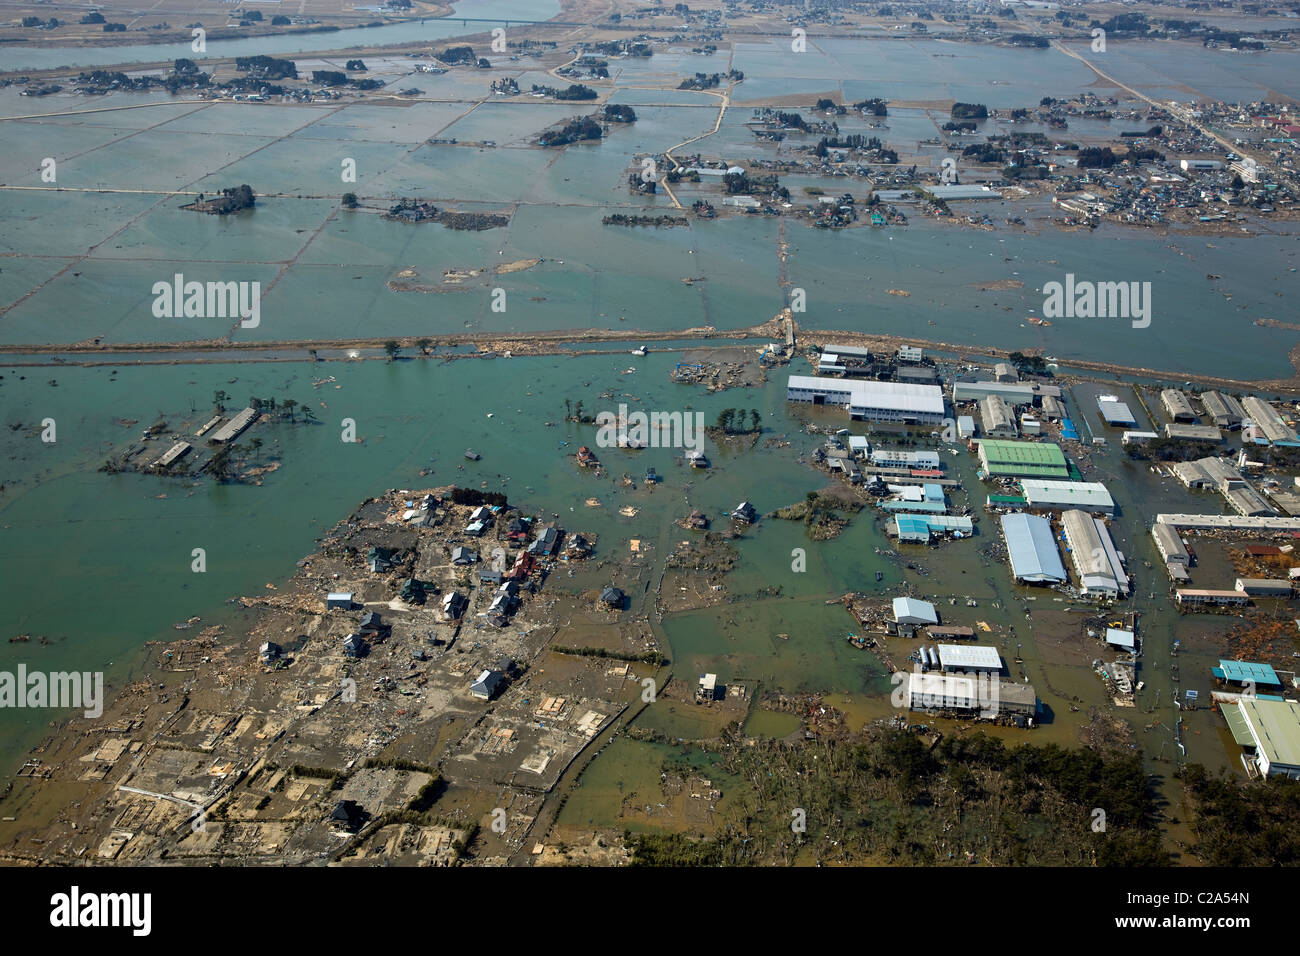 Aerial view of damage to Iwanuma, Miyagi Prefecture after a 9. 0 magnitude earthquake and subsequent tsunami devastated - Stock Image